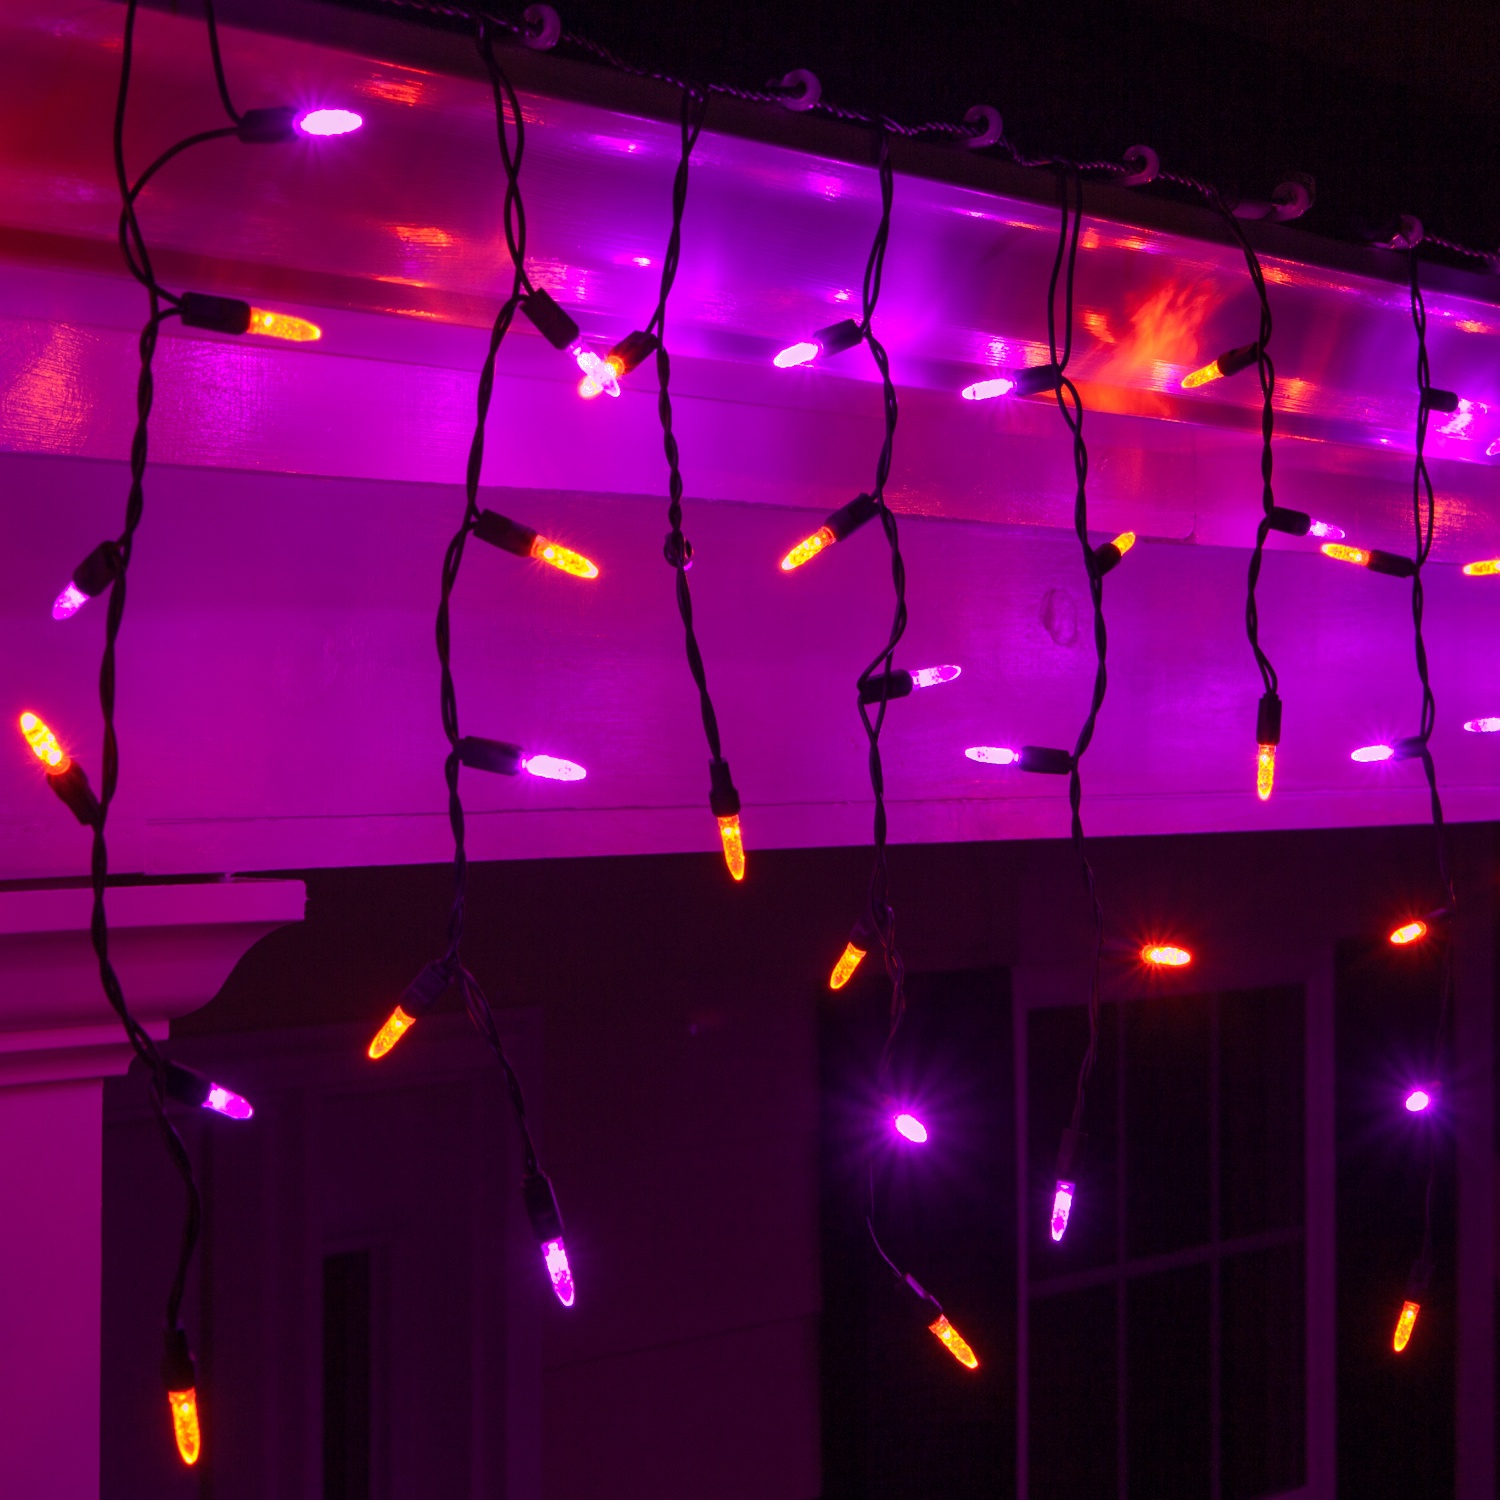 Halloween Purple Led String Lights : LED Christmas Lights - 70 M5 Purple, Orange Halloween LED Icicle Lights Black Wire